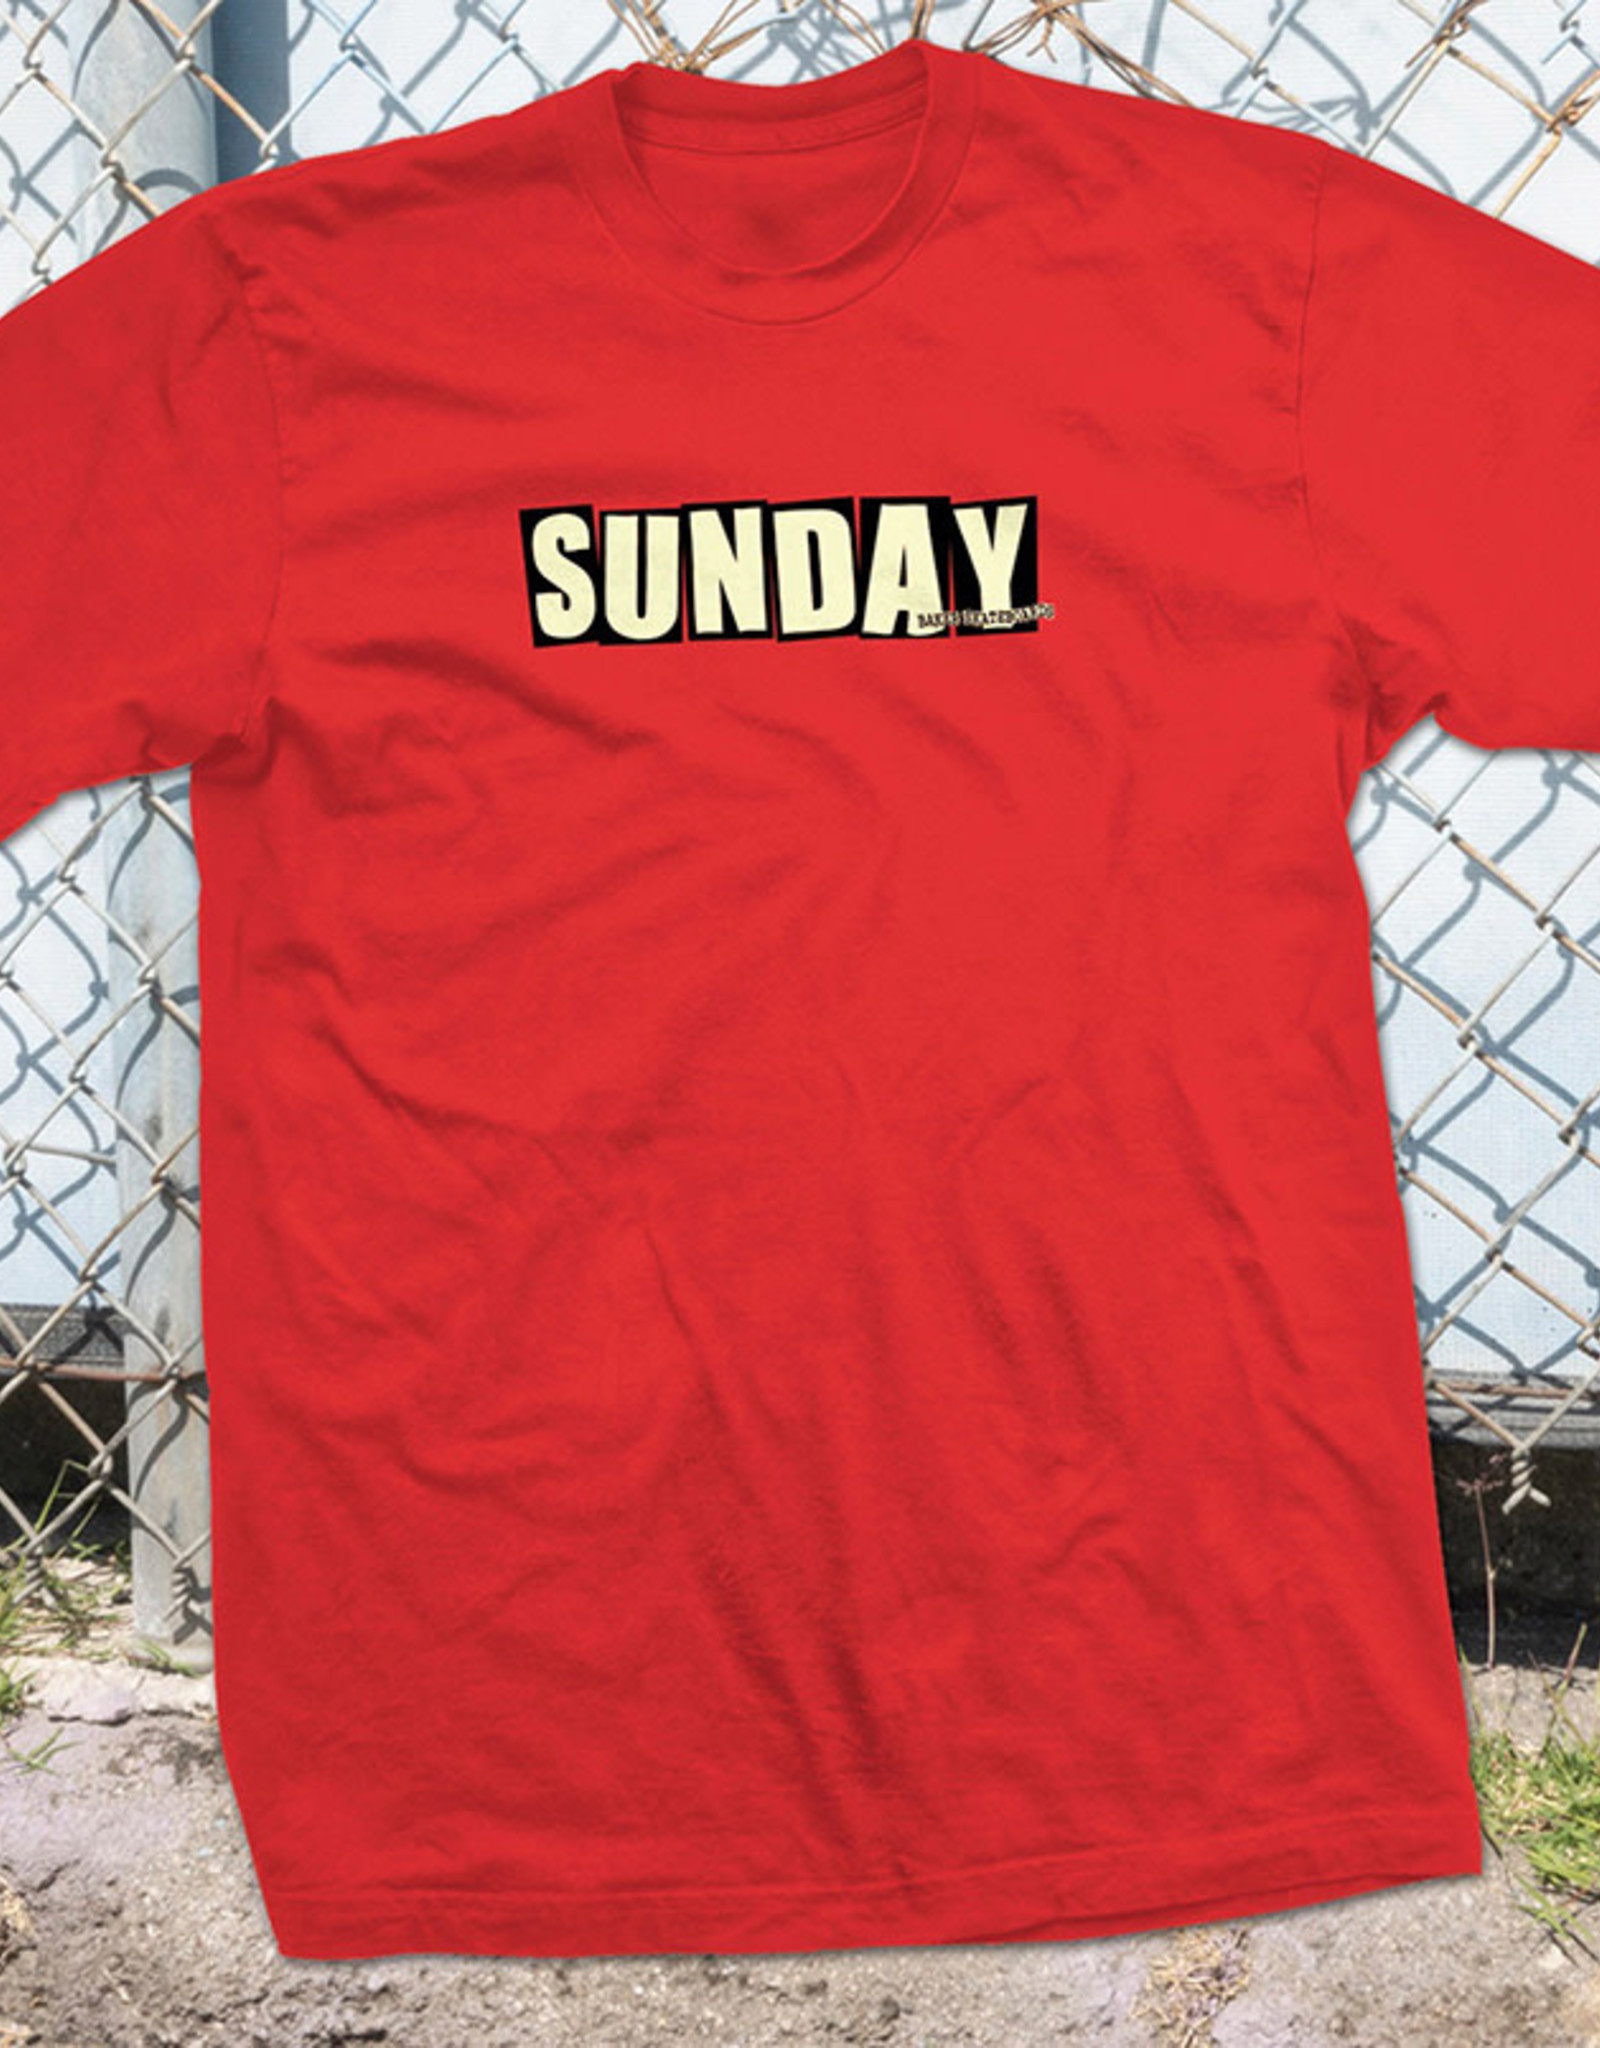 SUNDAY SUNDAY X BAKER SKATEBOARDS TEE SHIRT RED